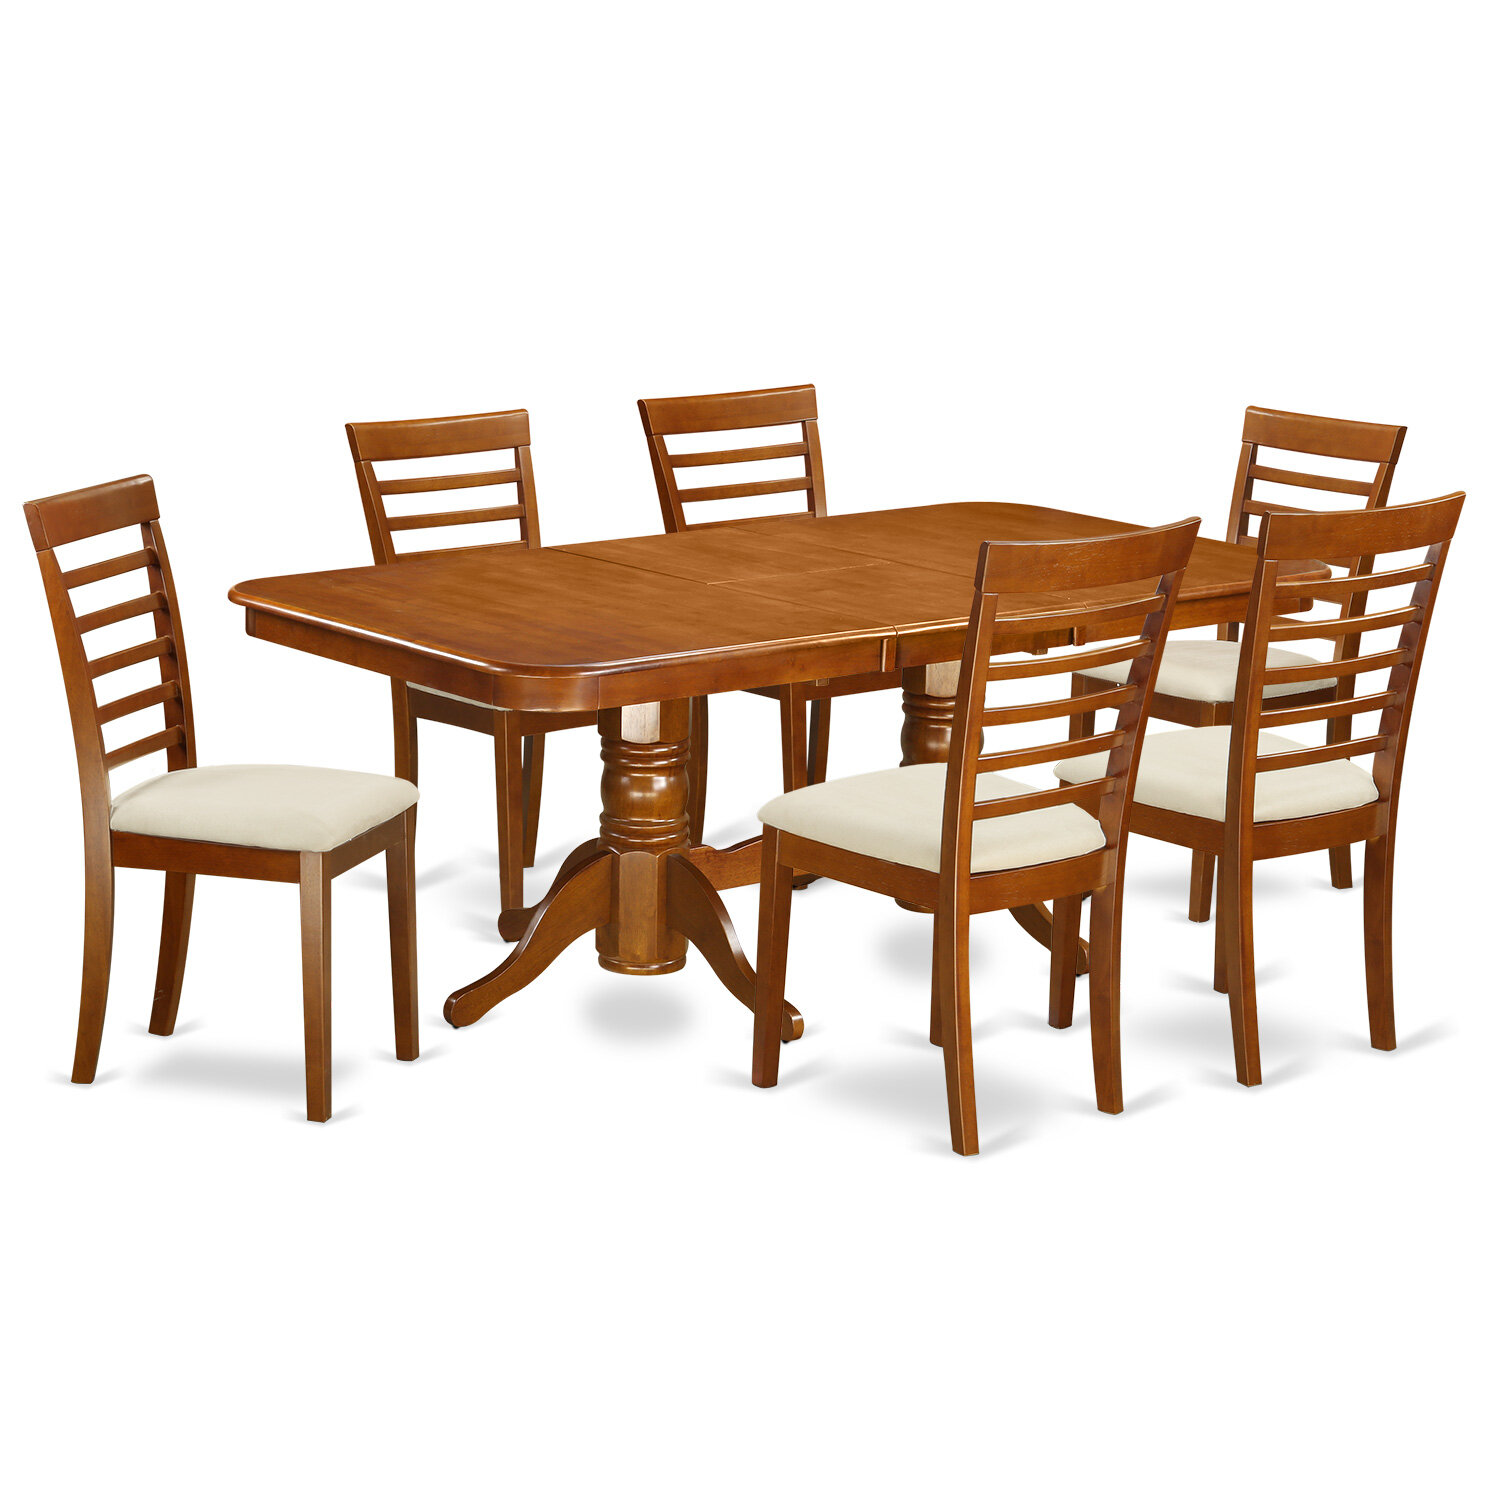 August Grove Pillsbury Modern 7 Piece Dining Set Reviews Wayfair